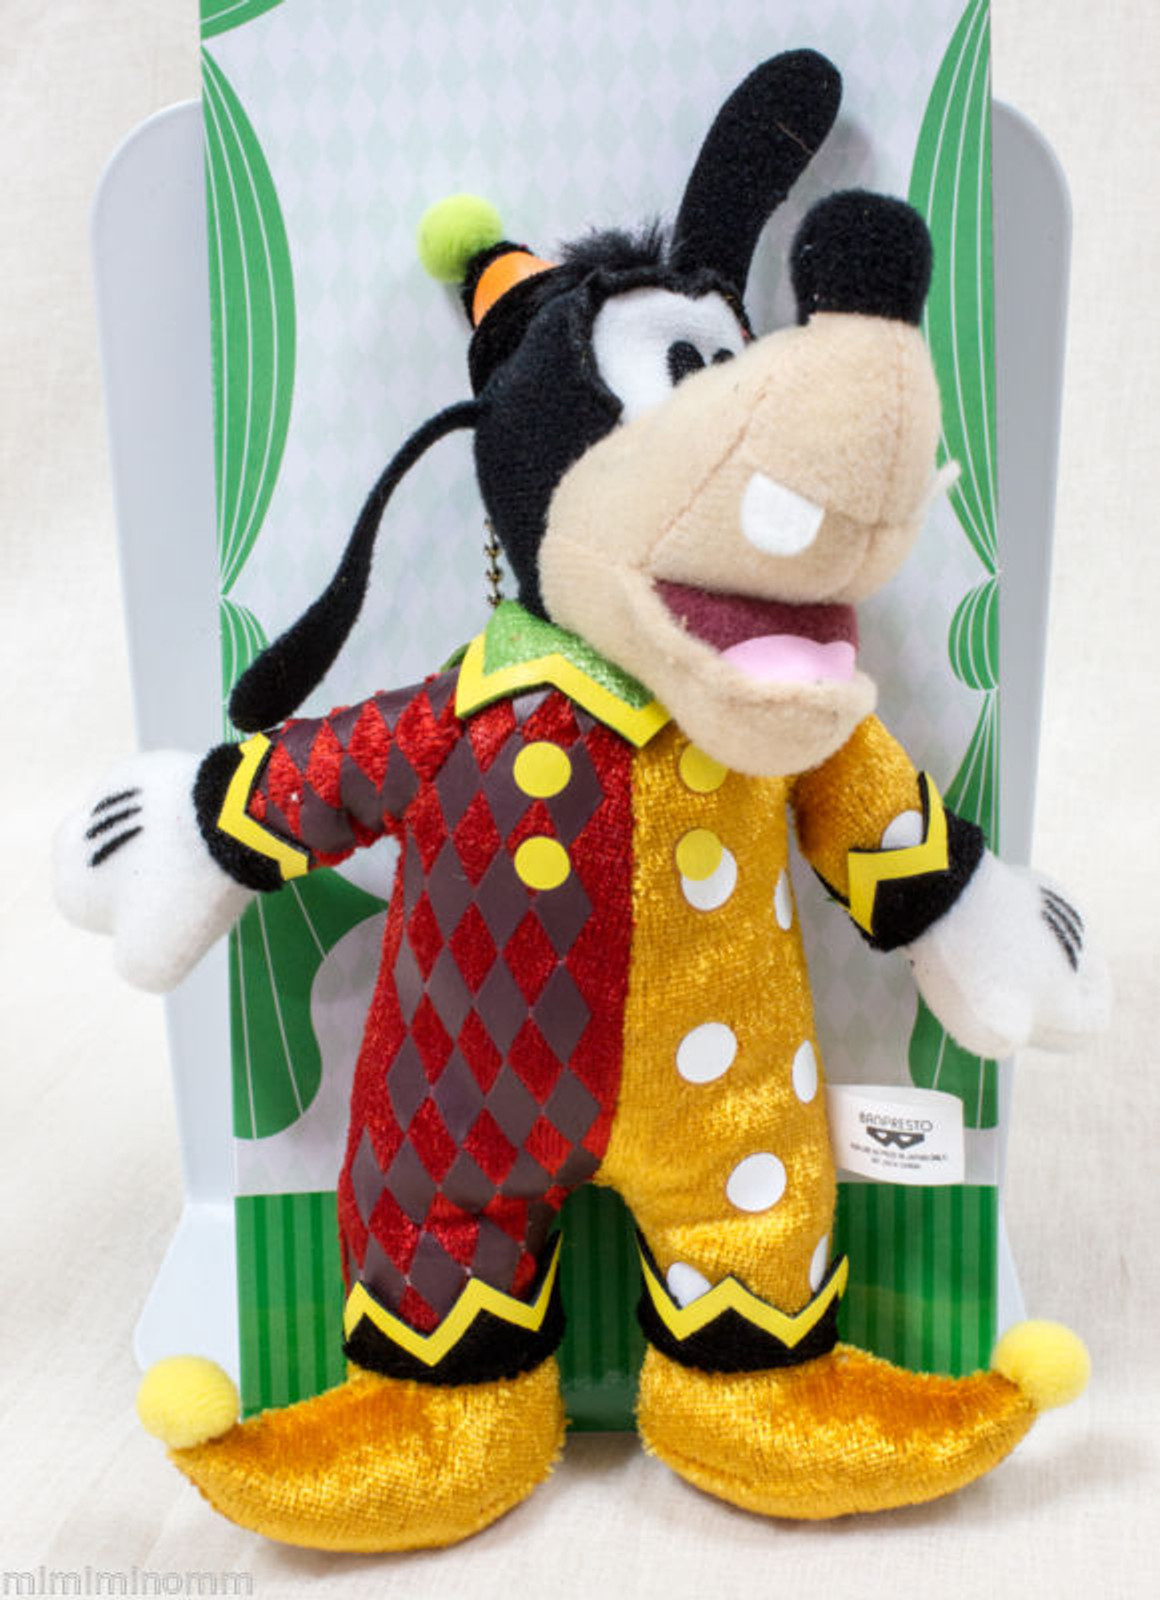 Disney Goofy 6 inch Plush doll with Keycain Mascot Figure Halloween Circus JAPAN